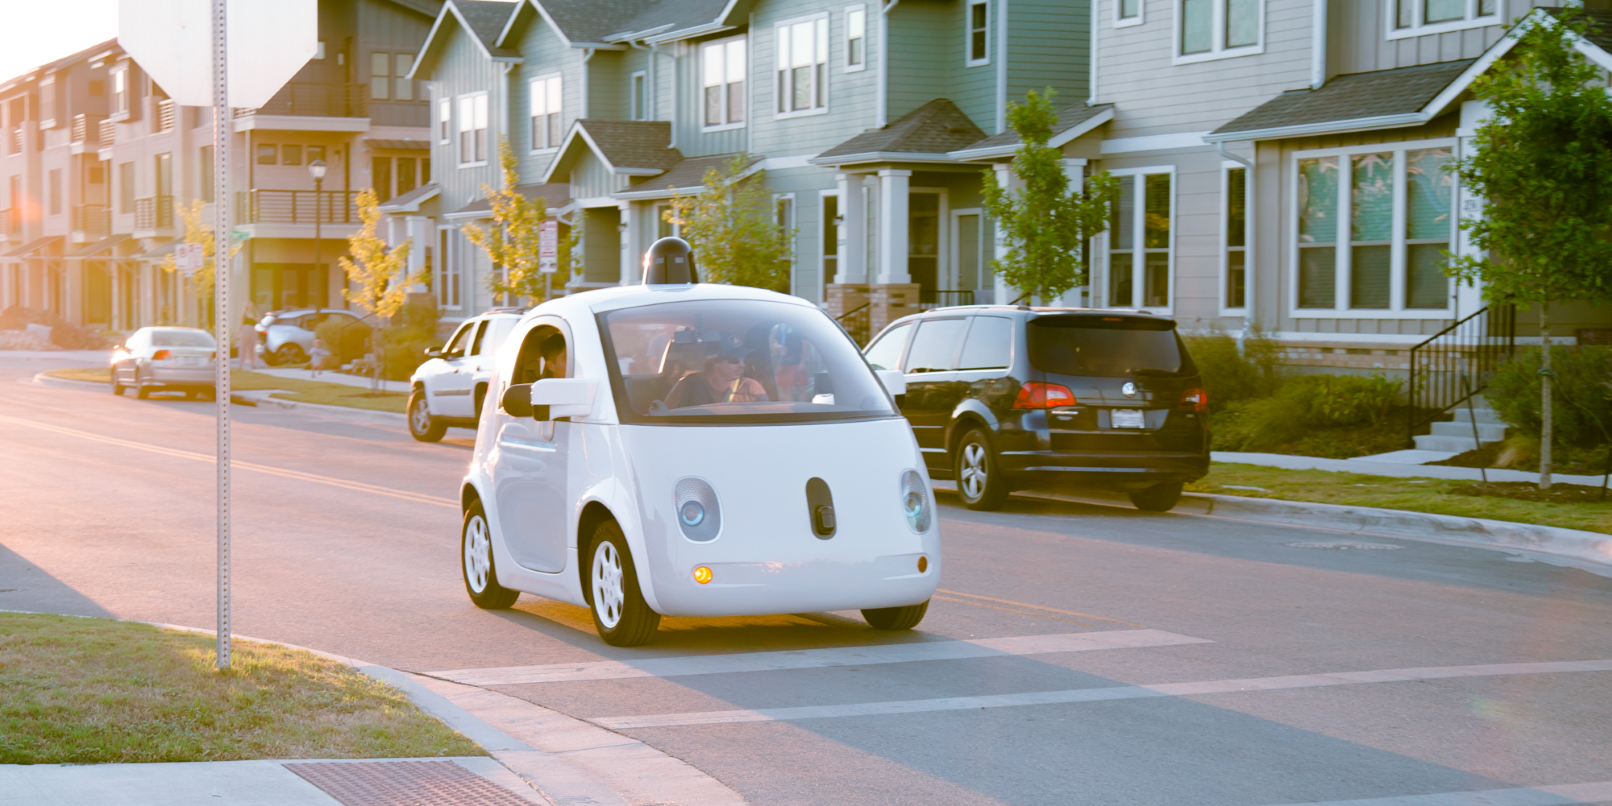 Google filings suggest it wants its self-driving cars to charge wirelessly